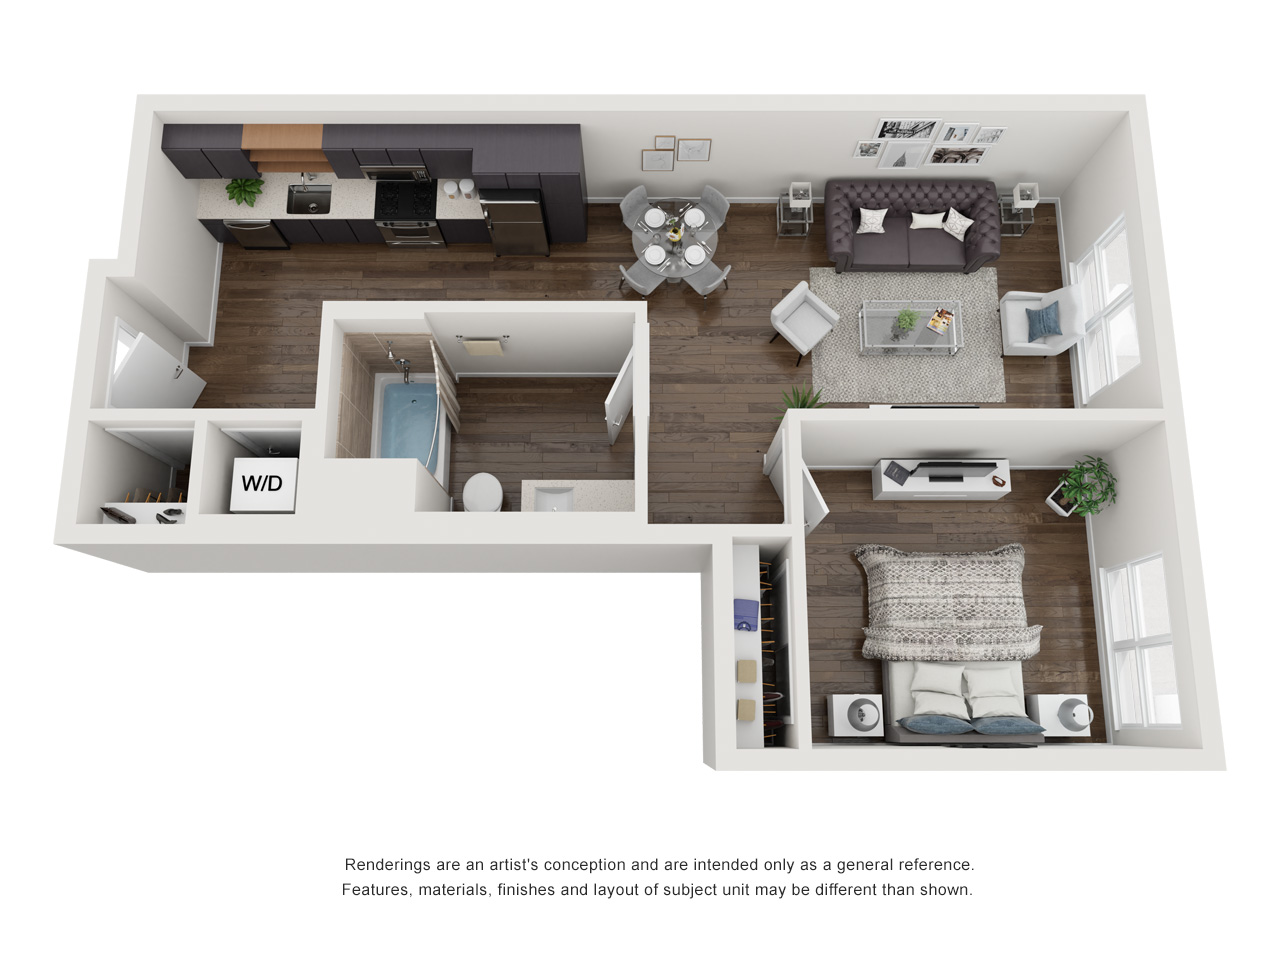 Plan 1B.1 1 Bedroom | 1 Bath